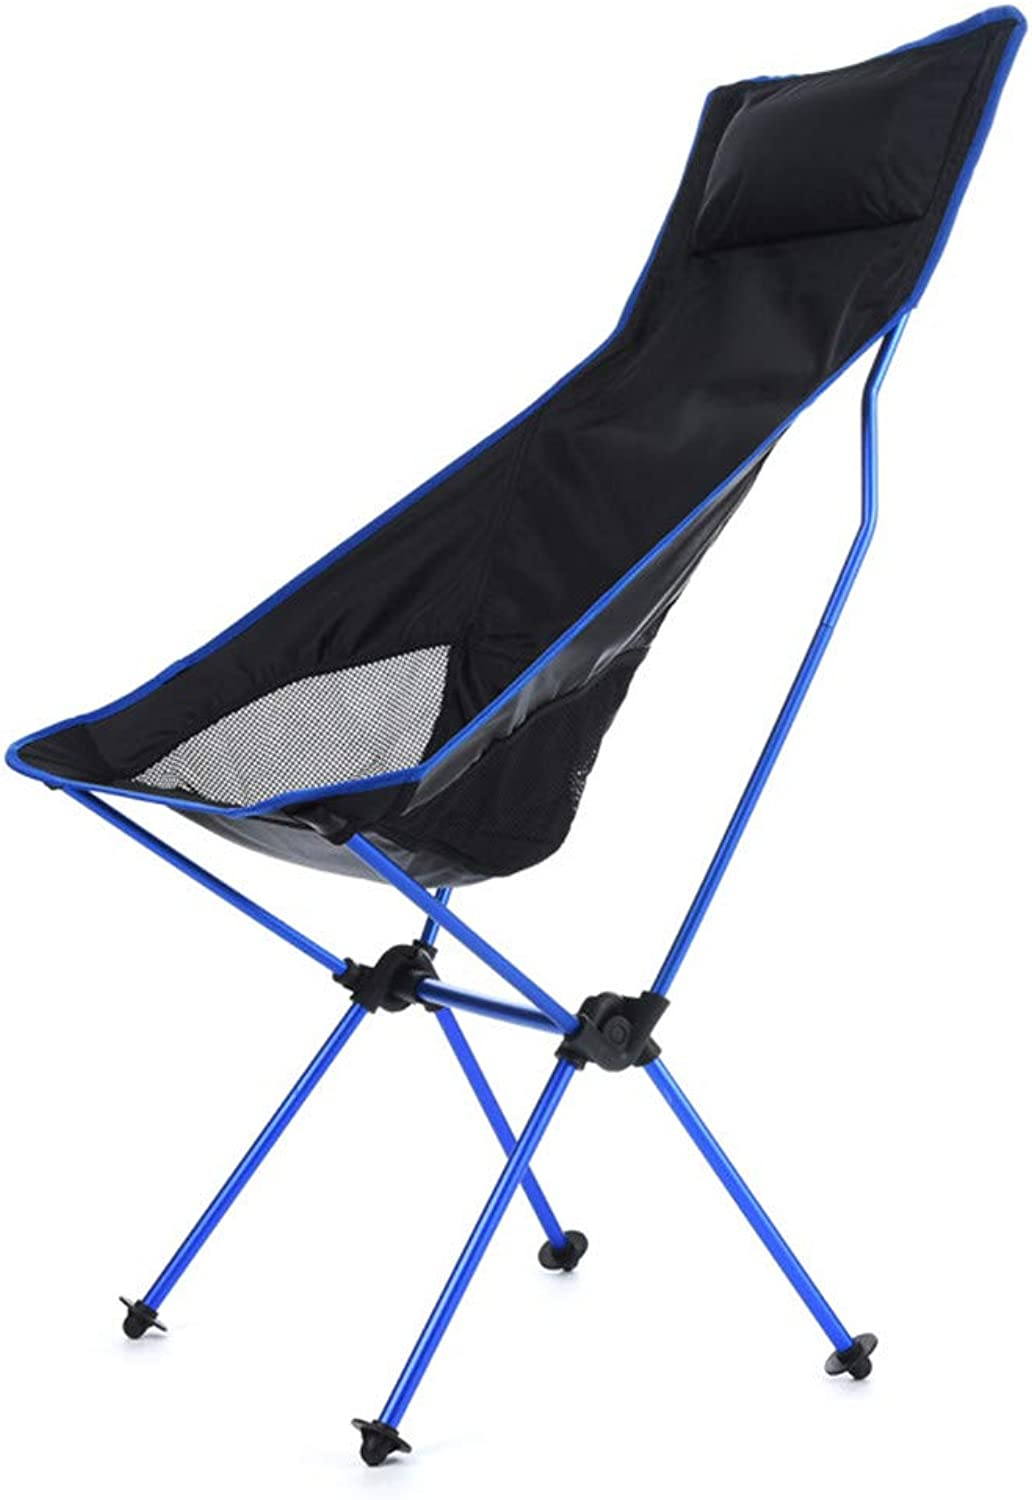 Ultralight Folding Chair Fishing Chair with Cushions, 900D Oxford Camping Chair Beach Chairs Made of 7075 Aircraft Aluminum loadable up to 150 kg, Foldable, Lightweight